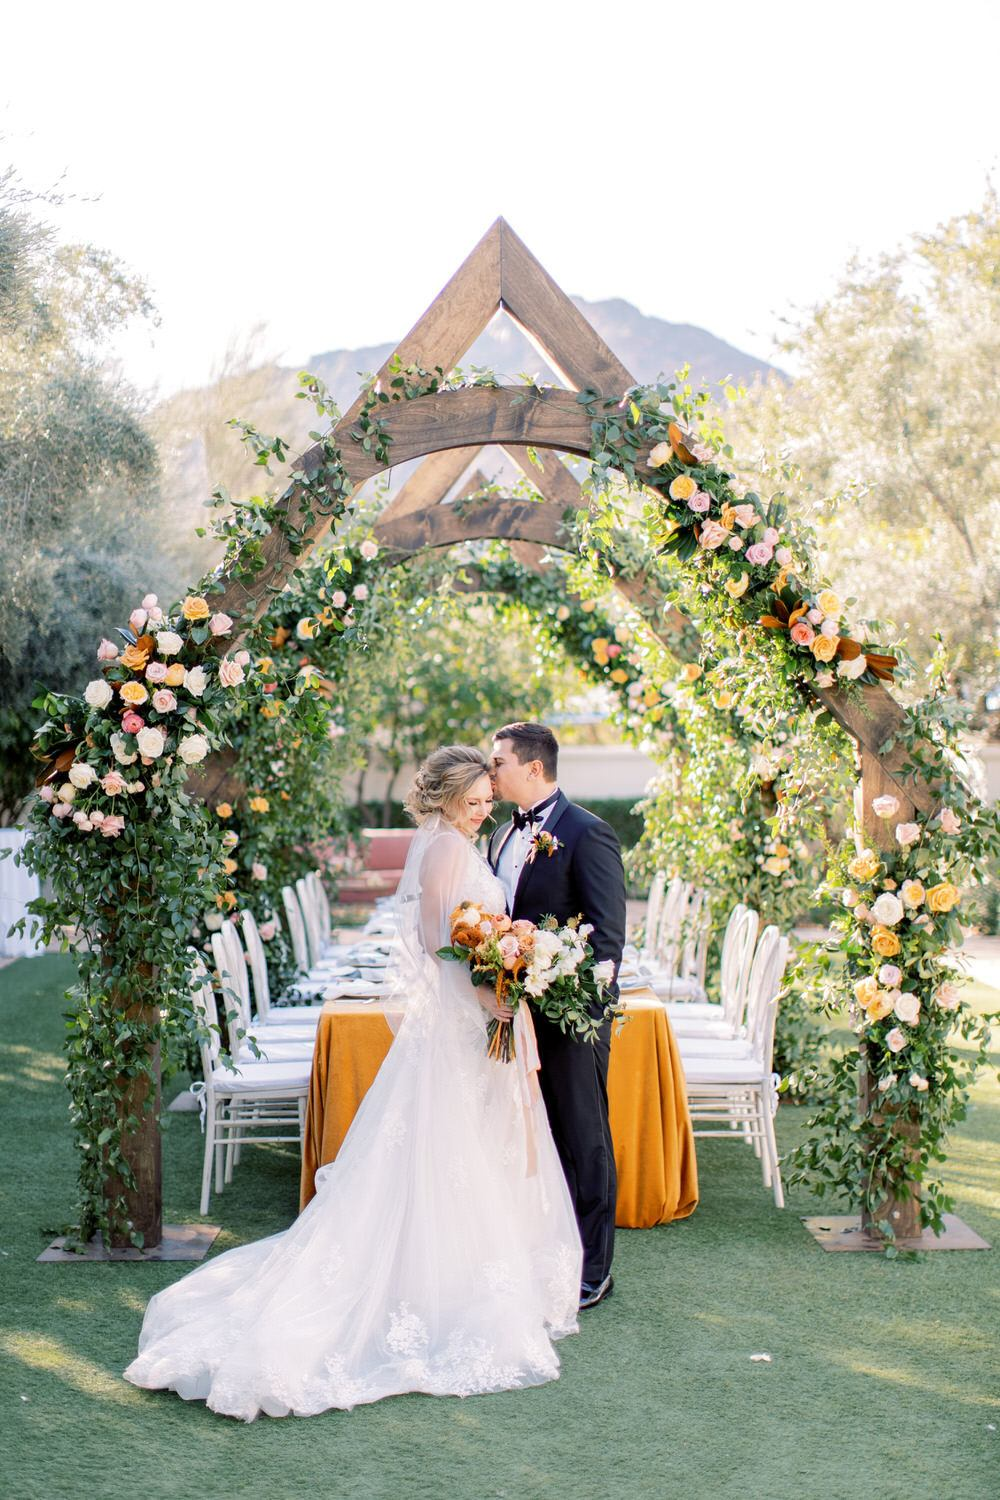 wooden arches decorated in lush florals with the groom kissing the bride's head underneath it all